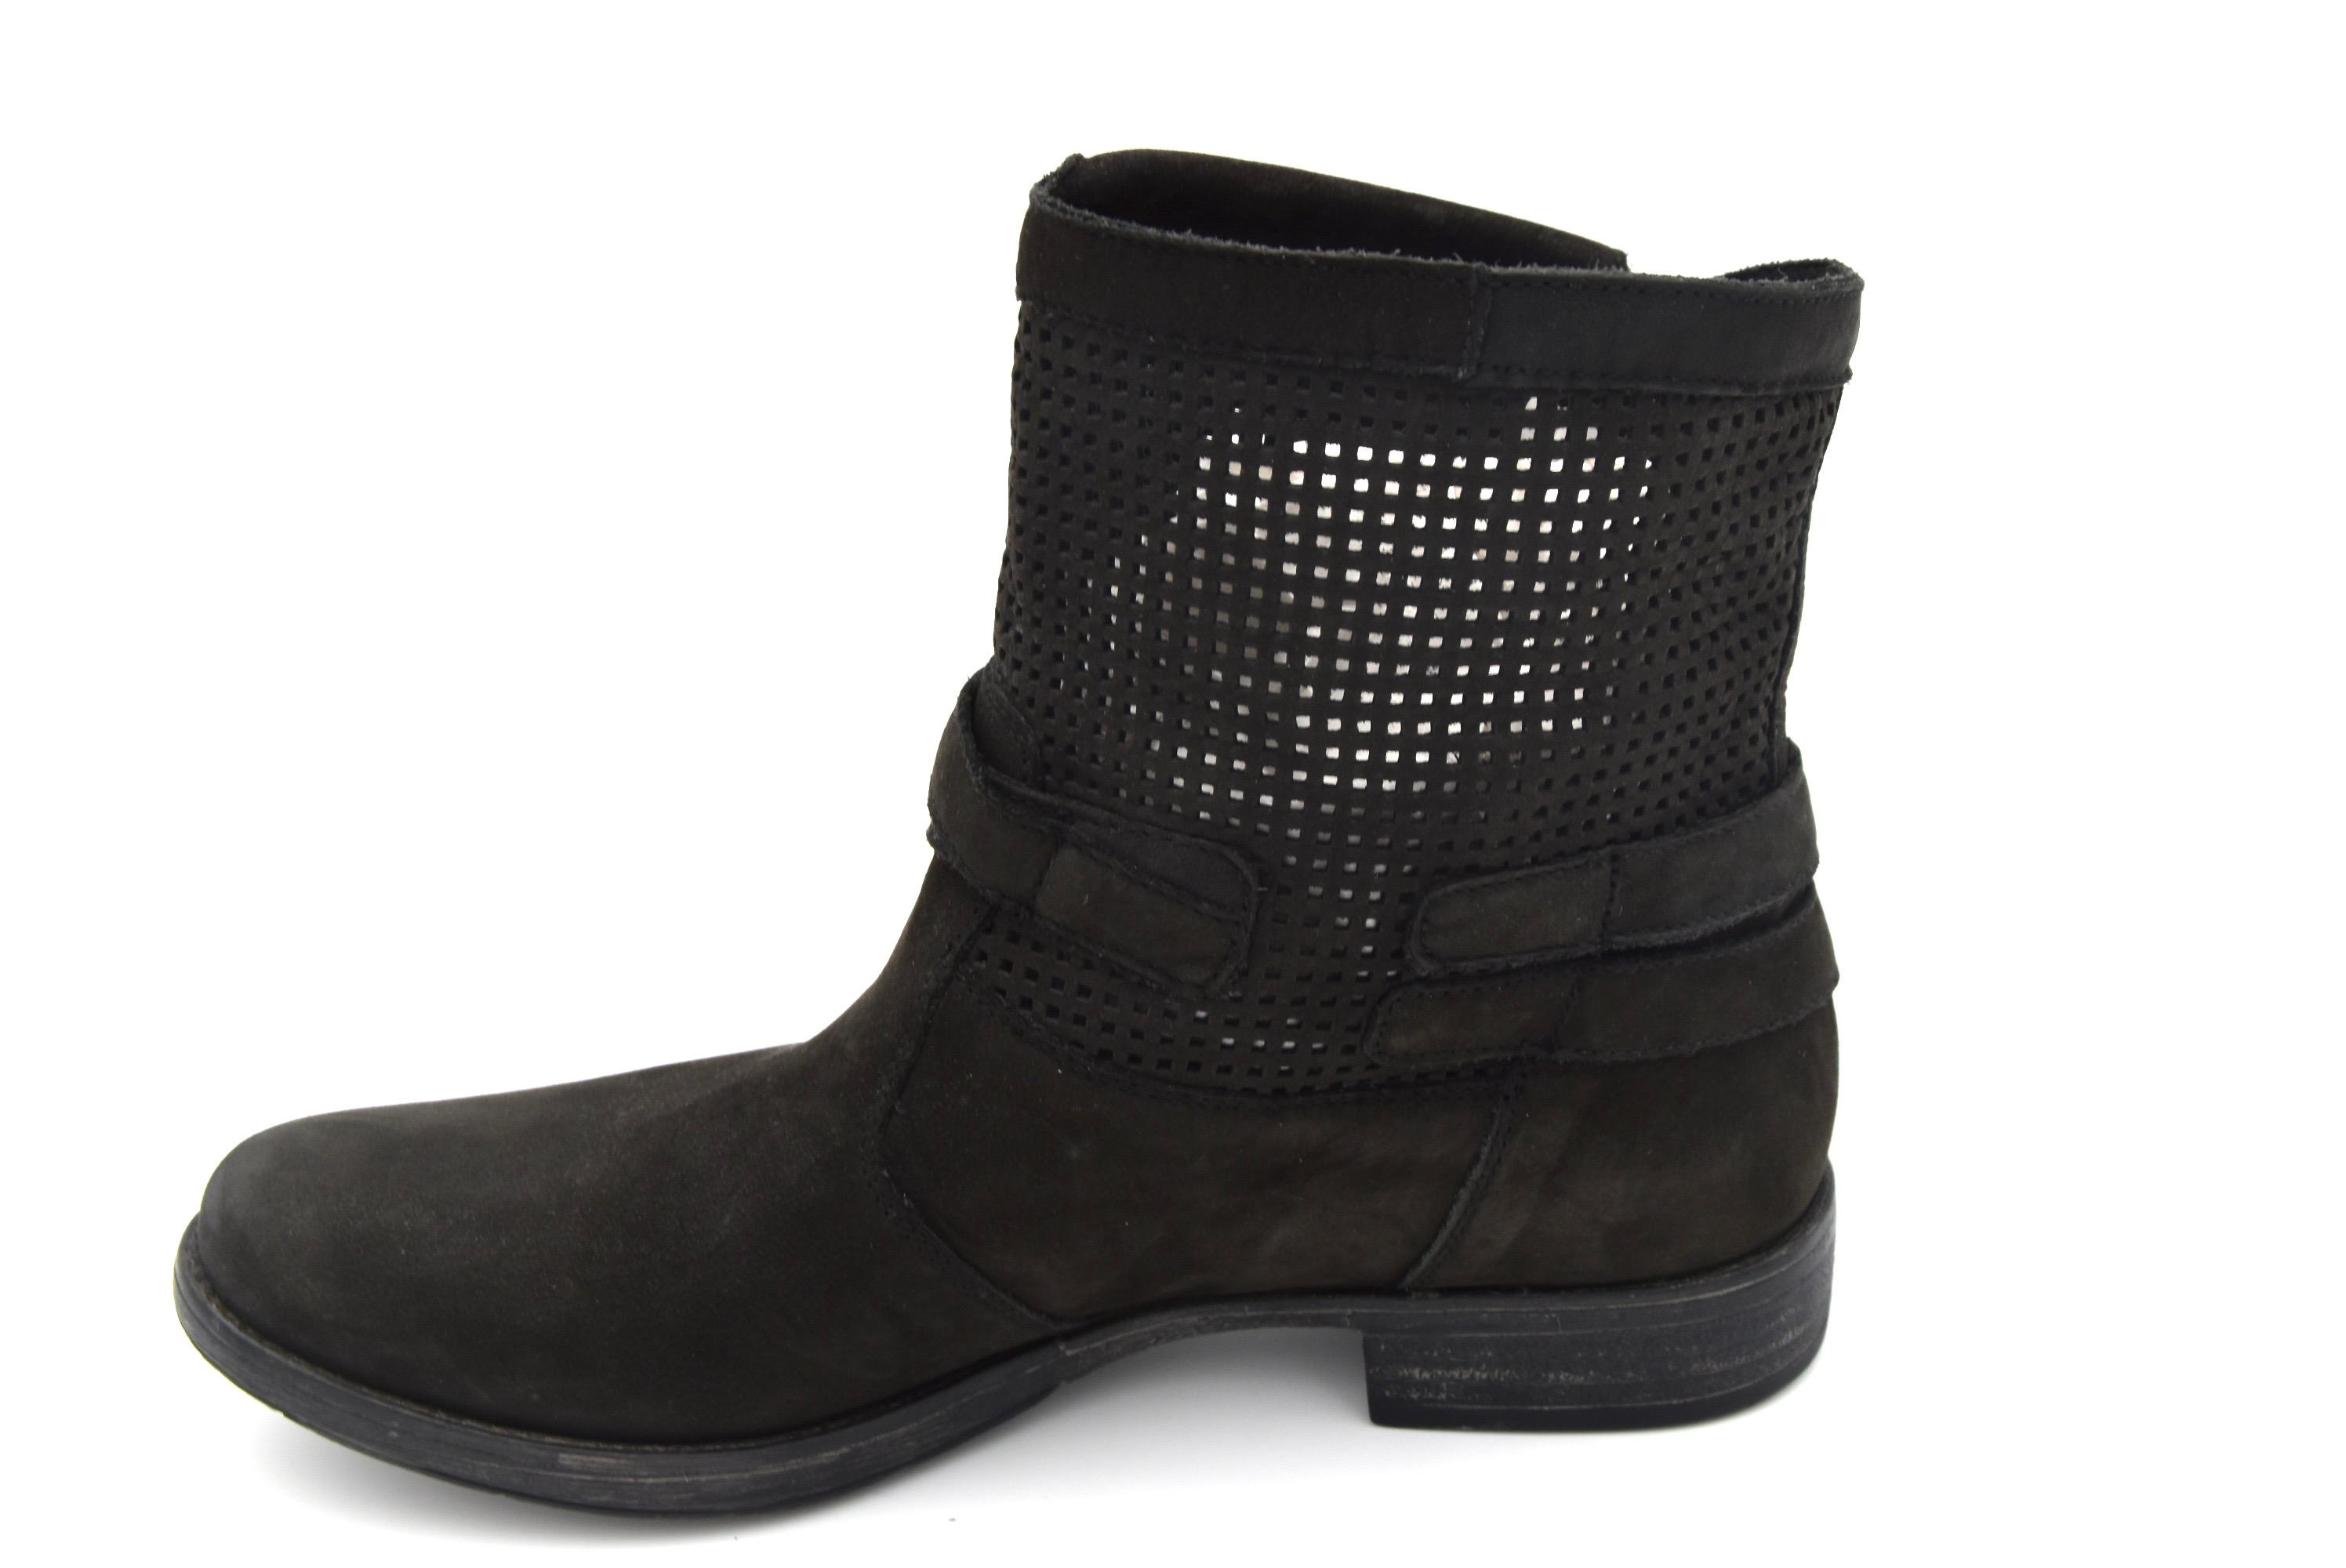 f77aab00d85 Details about NERO GIARDINI WOMAN BIKER ANKLE BOOTS BOOTIES WINTER LEATHER  CODE P512293D